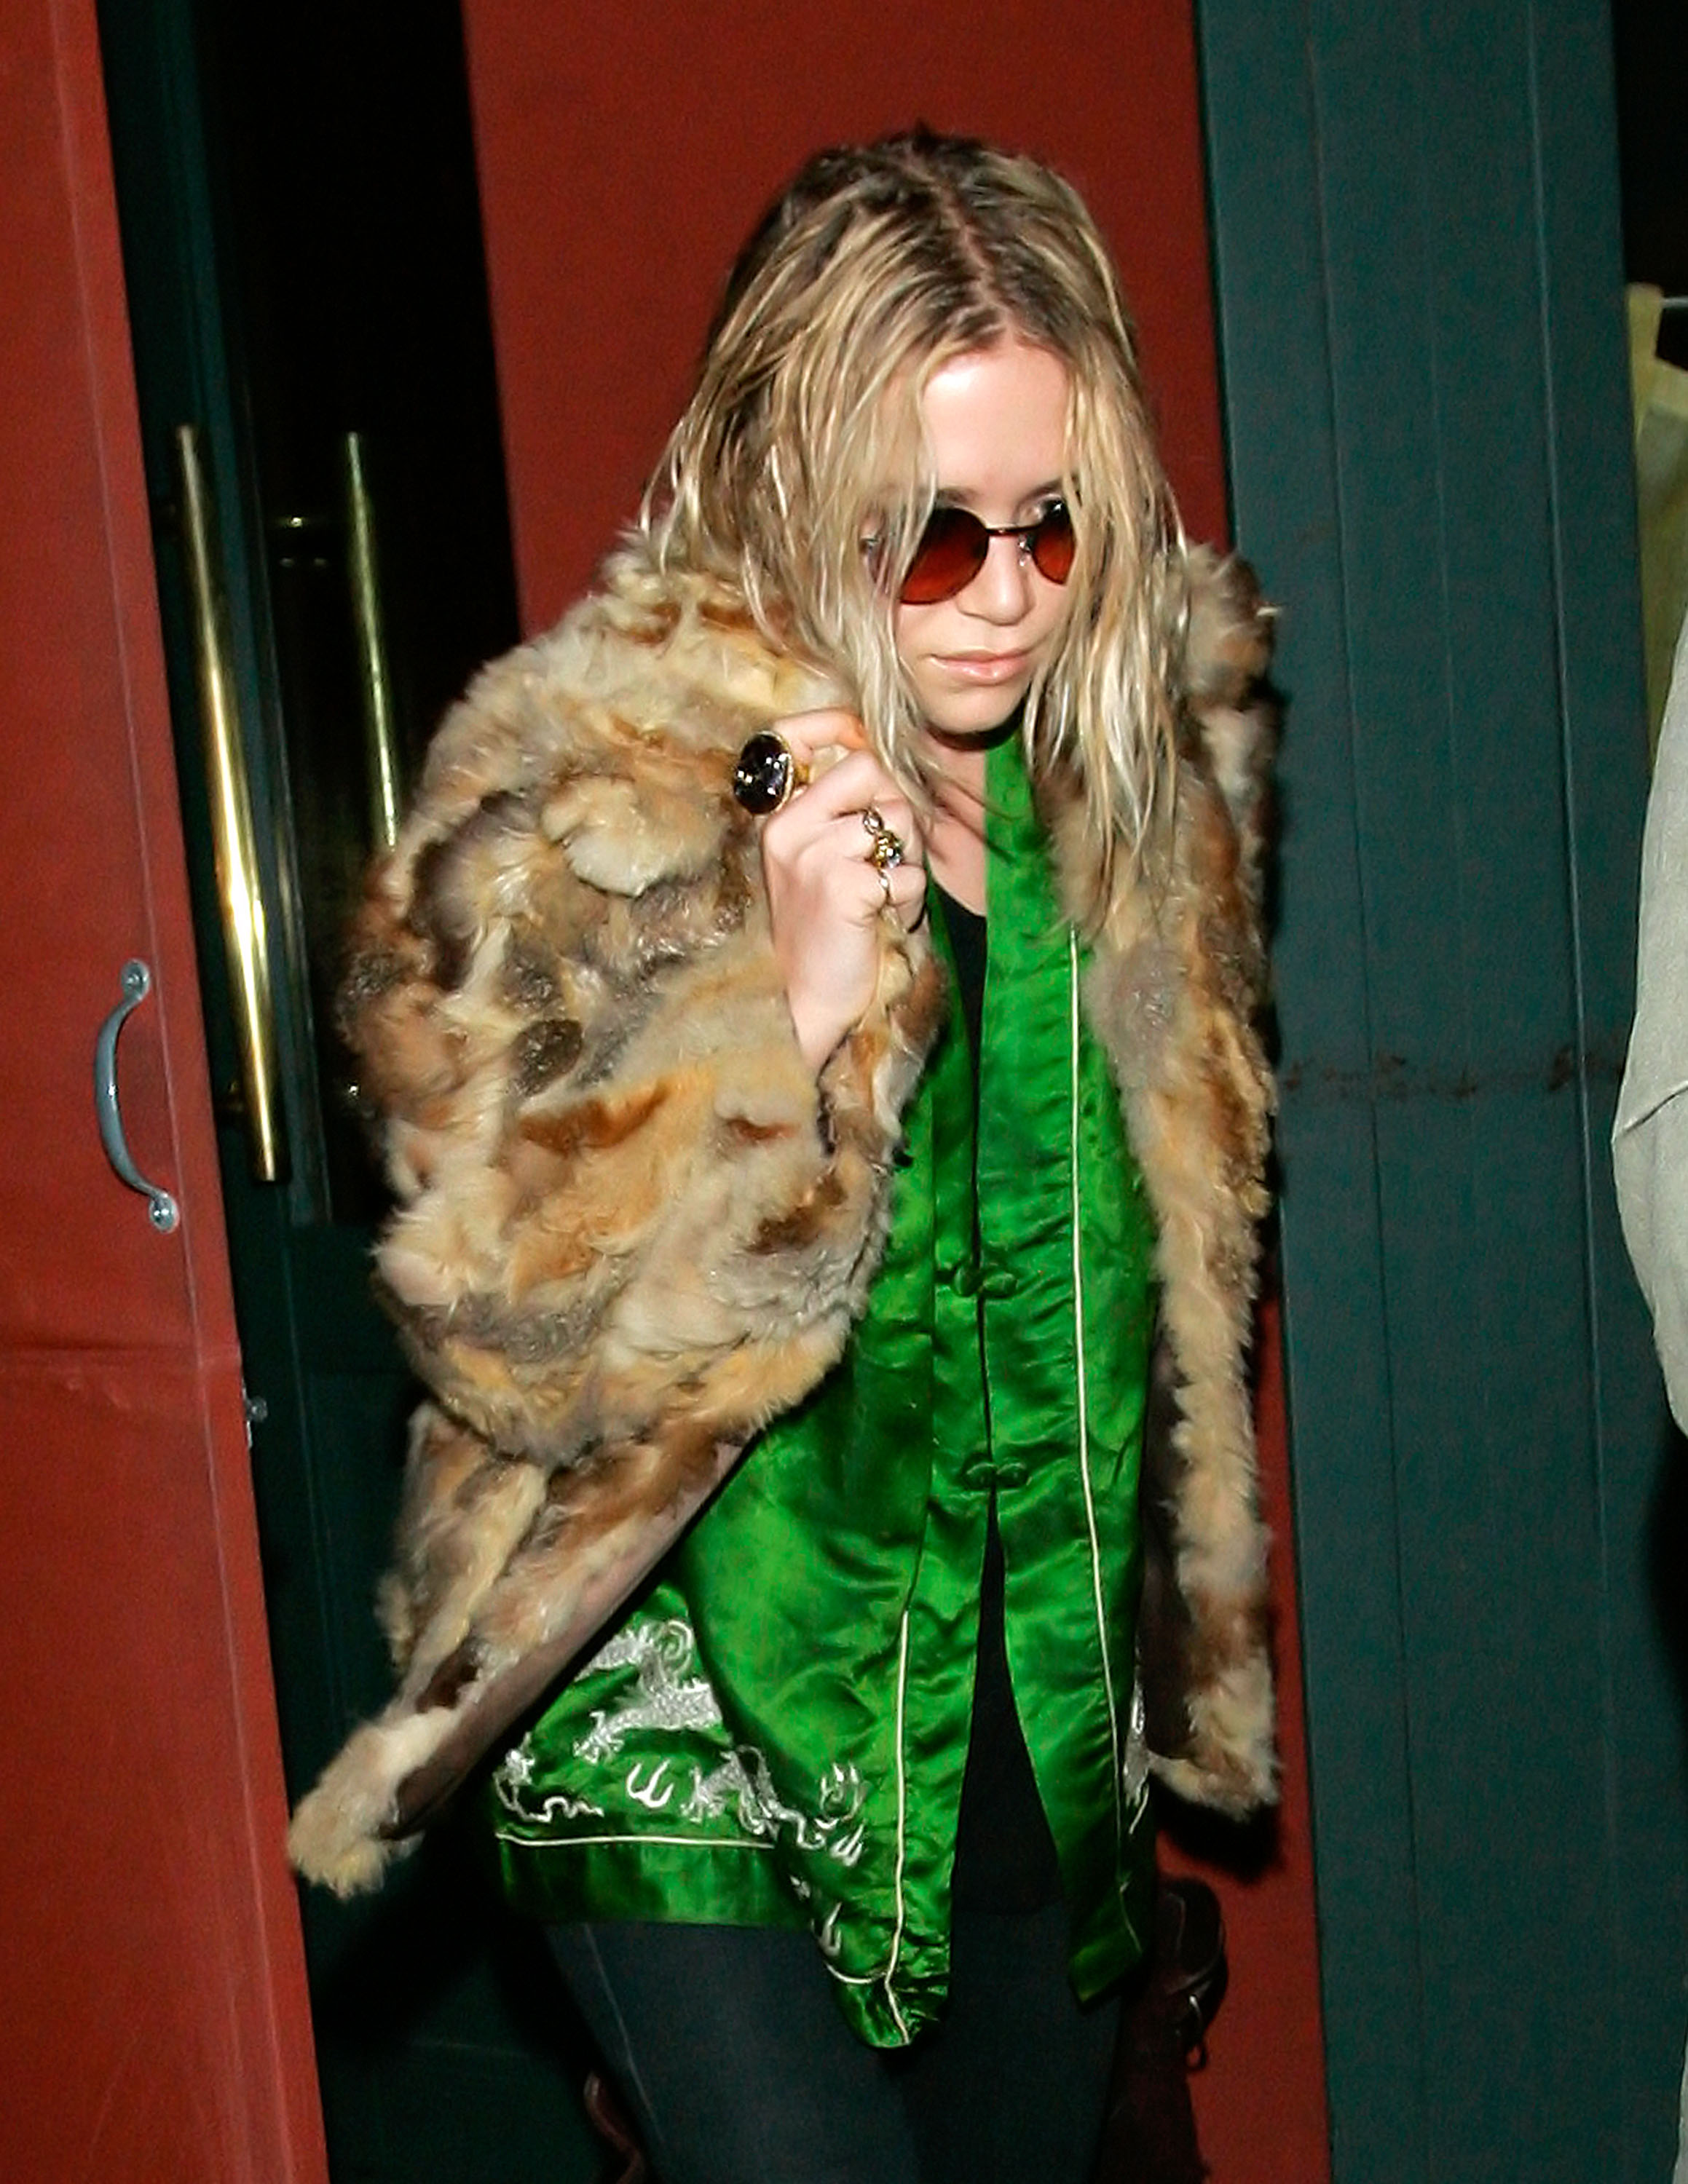 29757_celeb-city.eu_Mary_Kate_Olsen_out_and_about_for_a_late_lunch_in_the_West_Village_05.01.2008_01_122_38lo.jpg